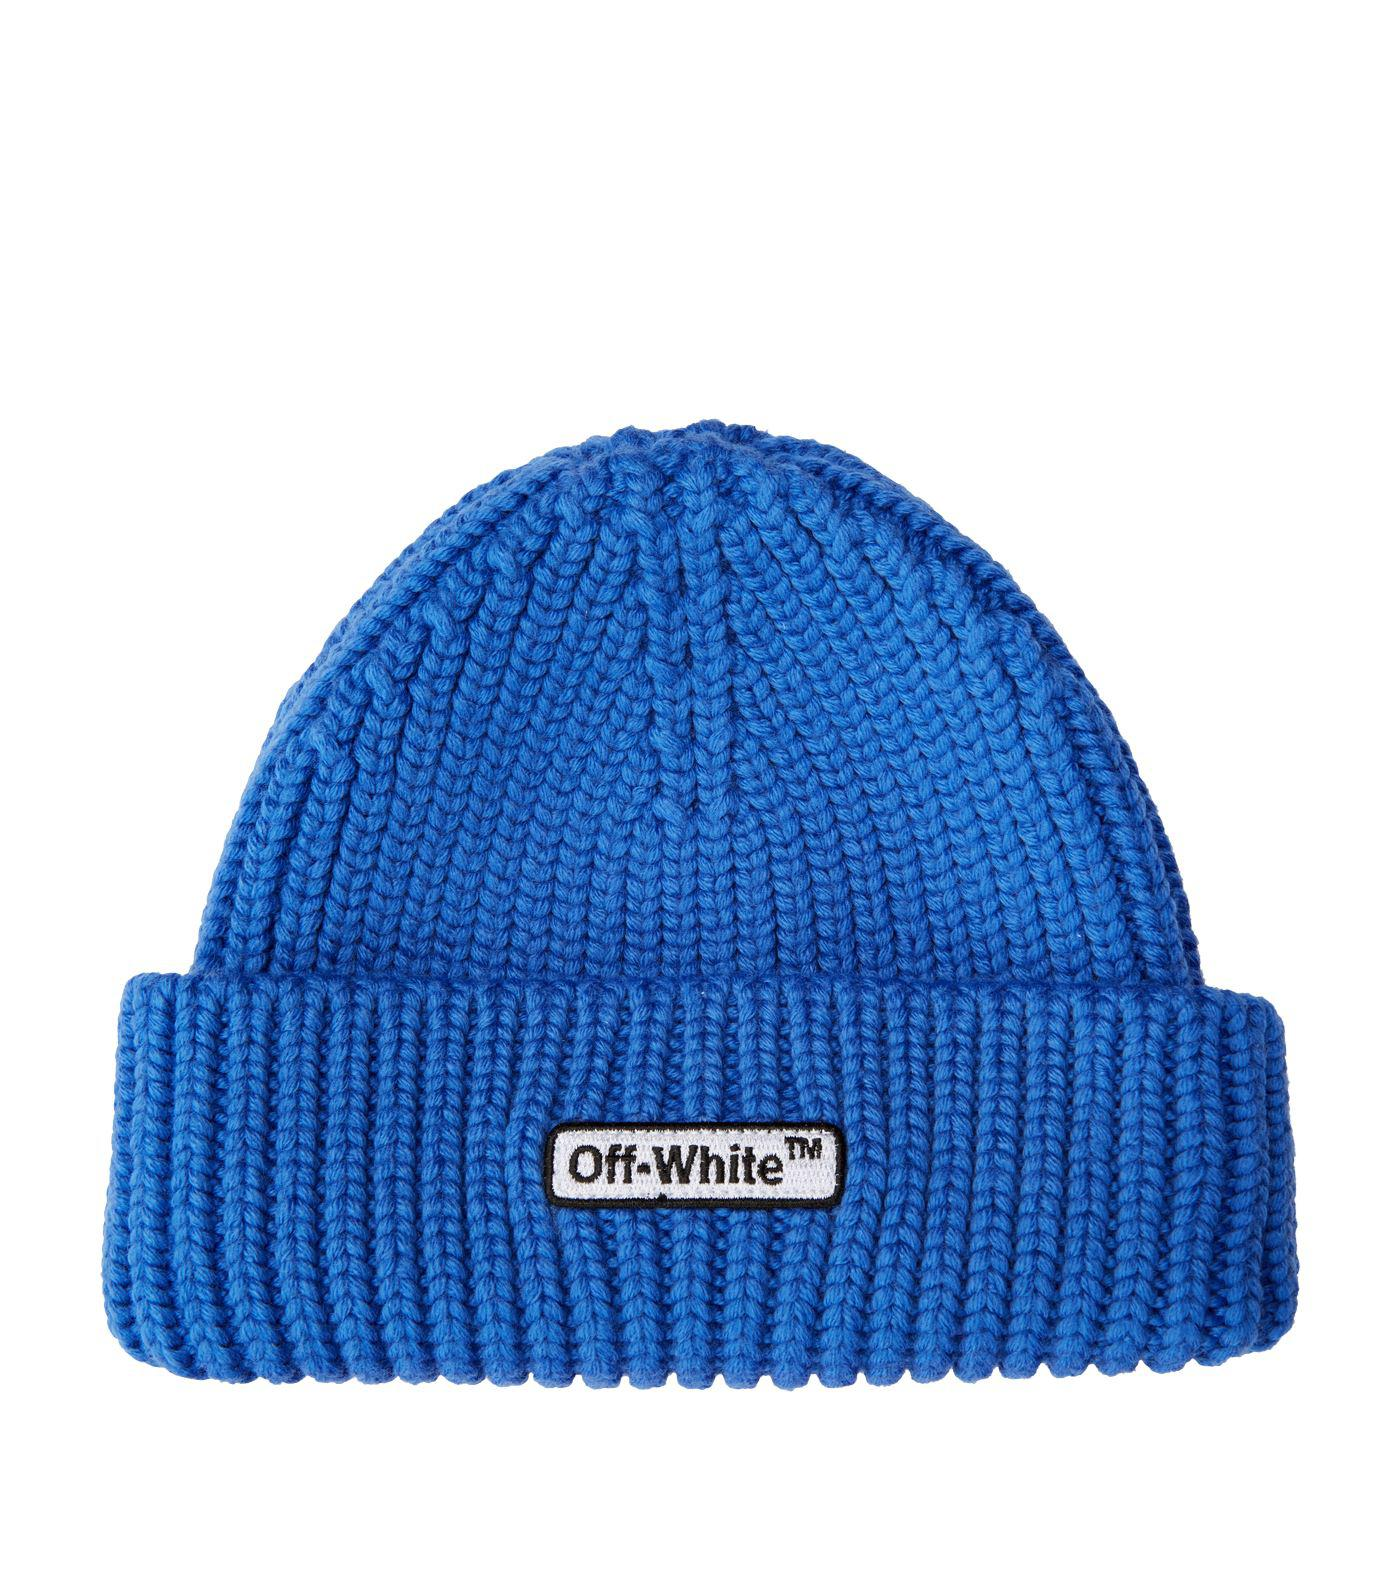 f1633806 Off-White c/o Virgil Abloh Patch Beanie in Blue for Men - Lyst